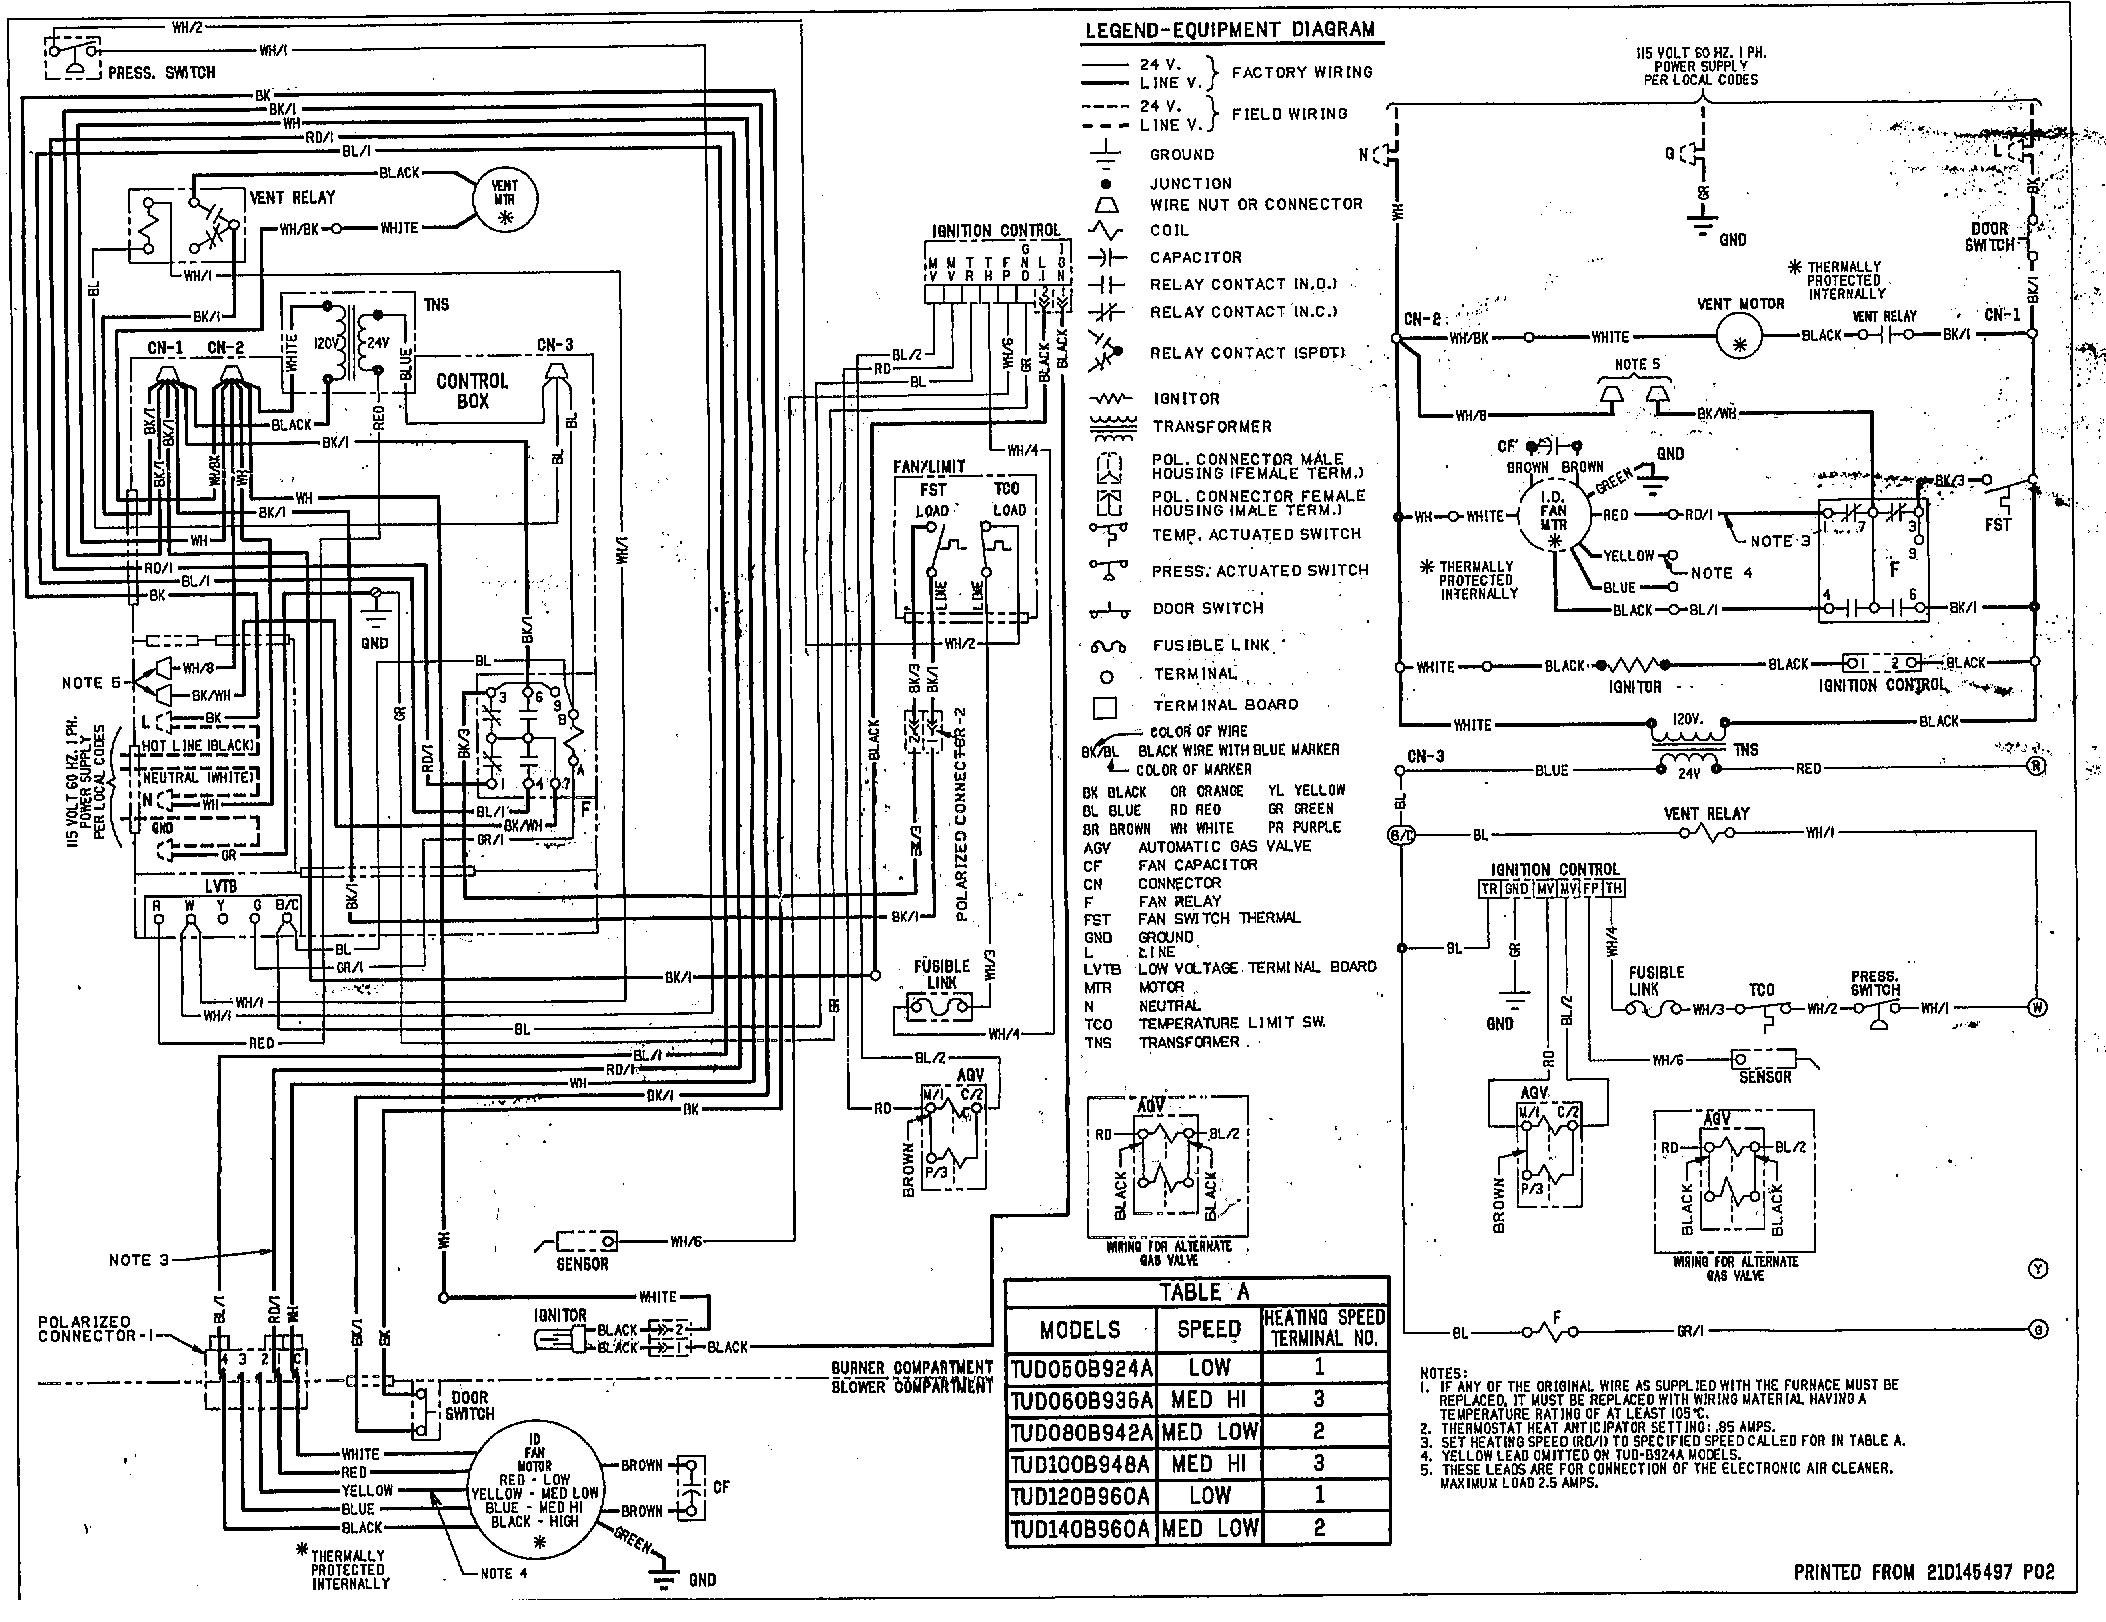 Lennox Standing Pilot Furnace Wiring Diagram - Comcast Home Wiring -  jaguars.ra-rewel4.jeanjaures37.frWiring Diagram Resource